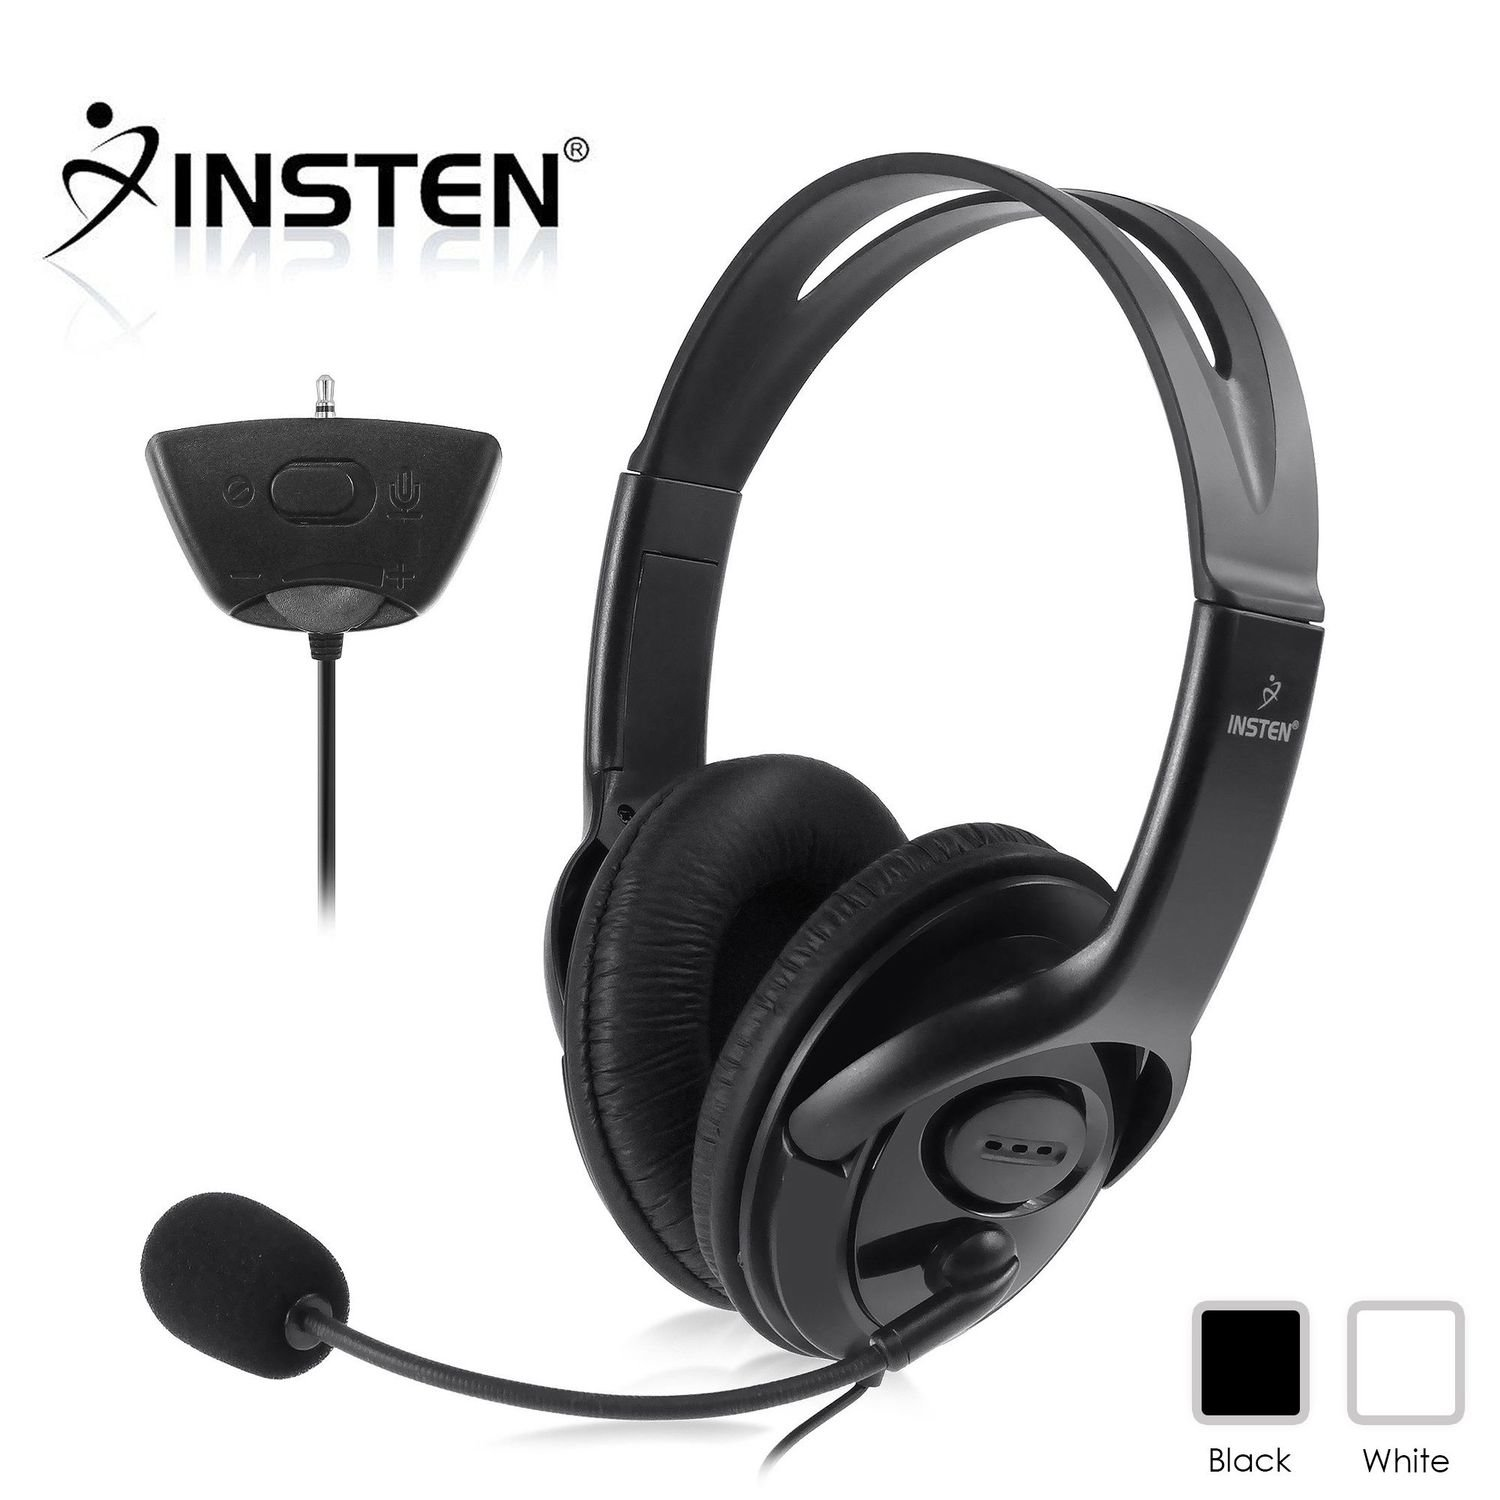 Insten Gaming Headset Headphone with Mic Compatible with Xbox 360 Wireless Controller, Black by INSTEN